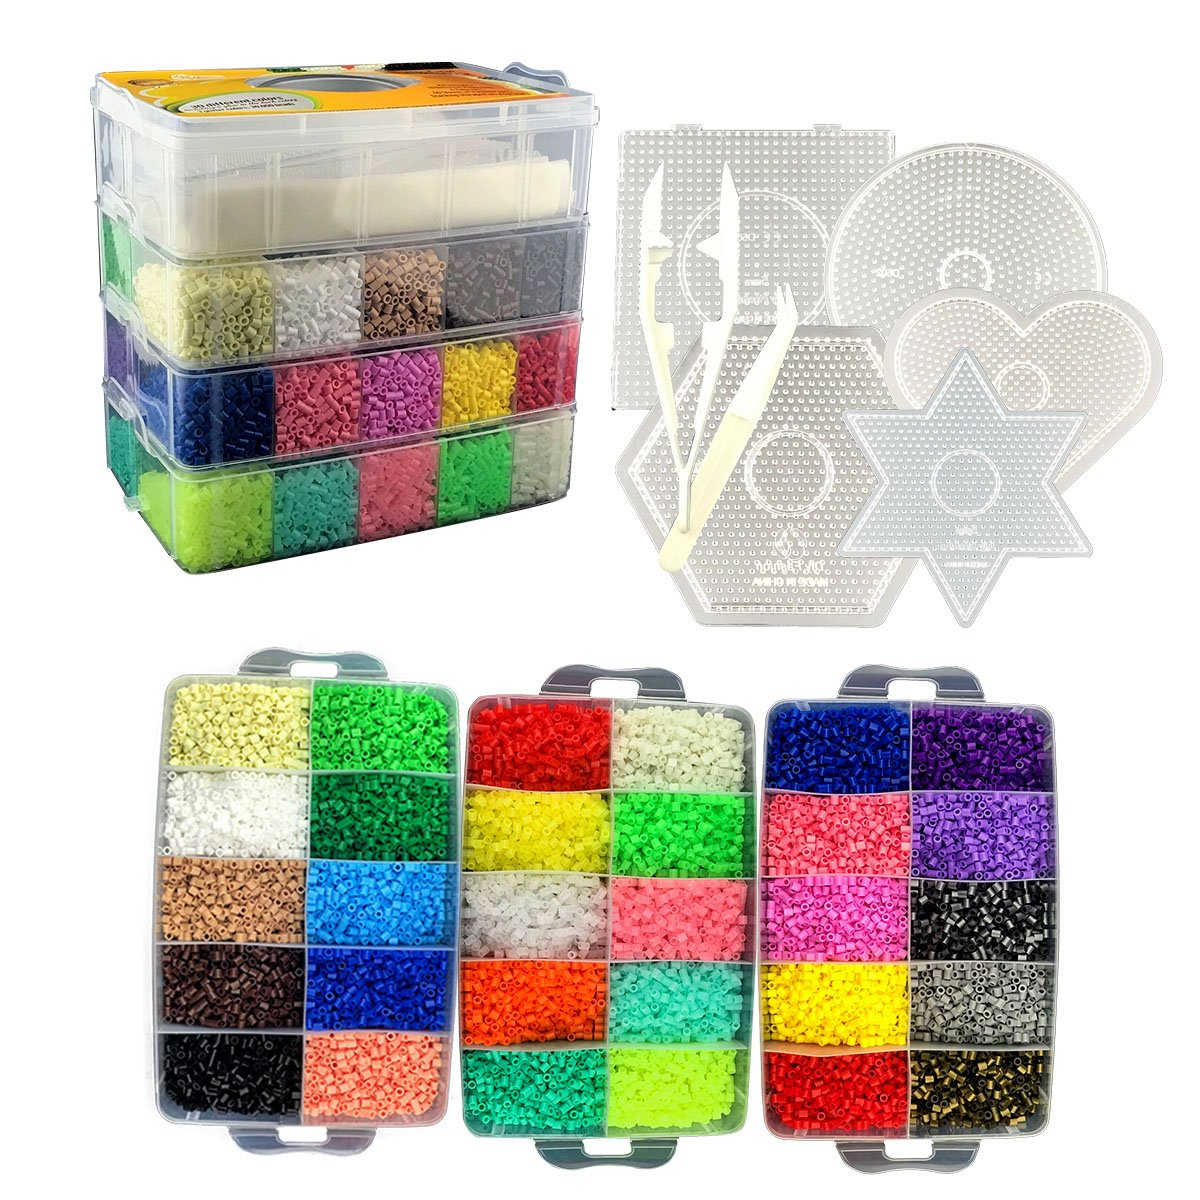 Little Visionary 30,000 Fuse Beads - Deluxe Hama Bead Kit Includes 6 Pegboards, Tweezers, Ironing Paper, Travel Case (30,000) by Little Visionary